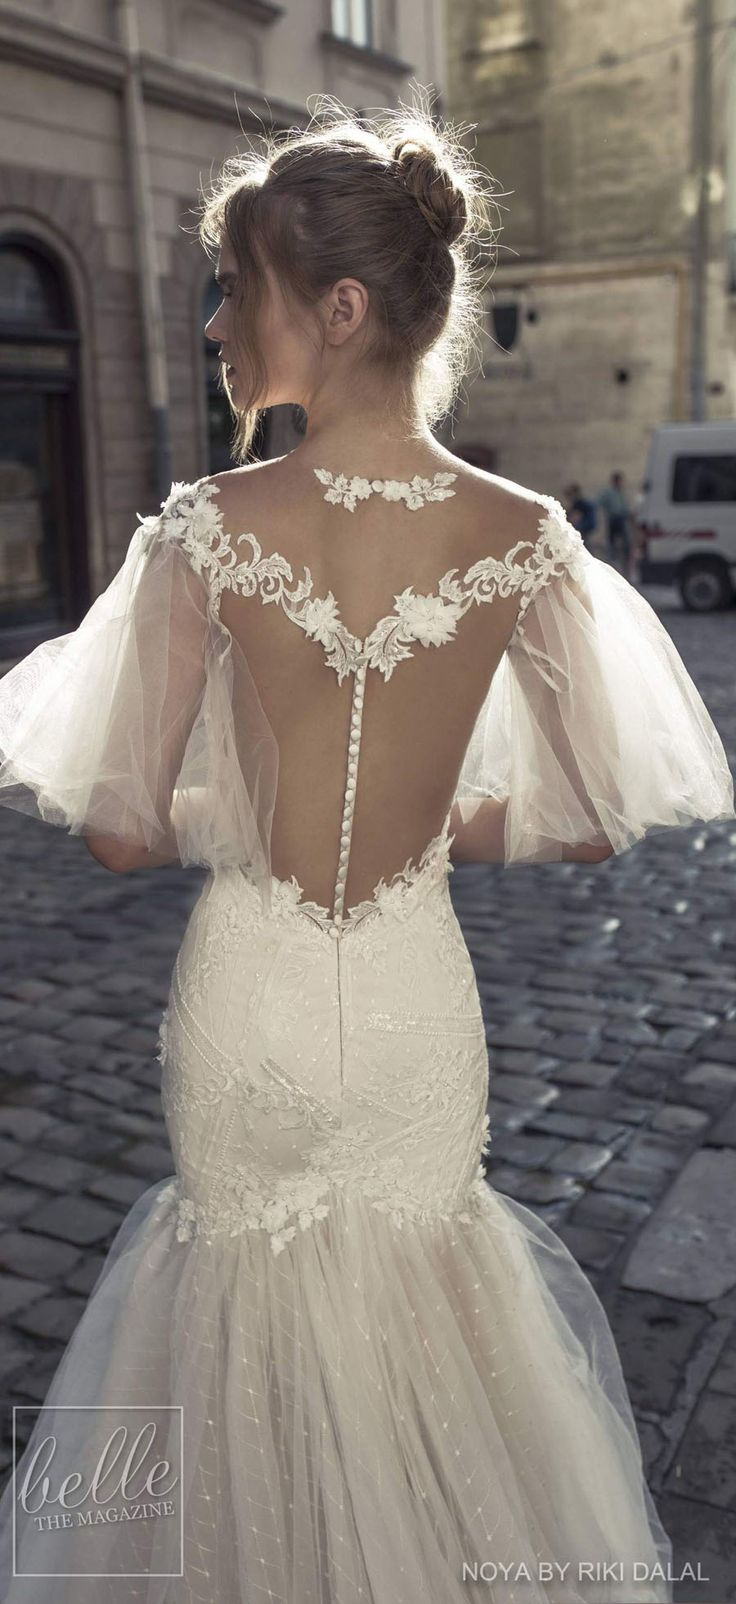 Noya by Riki Dalal Bridal 2018 Shakespeare Collection - never getting married but beautiful